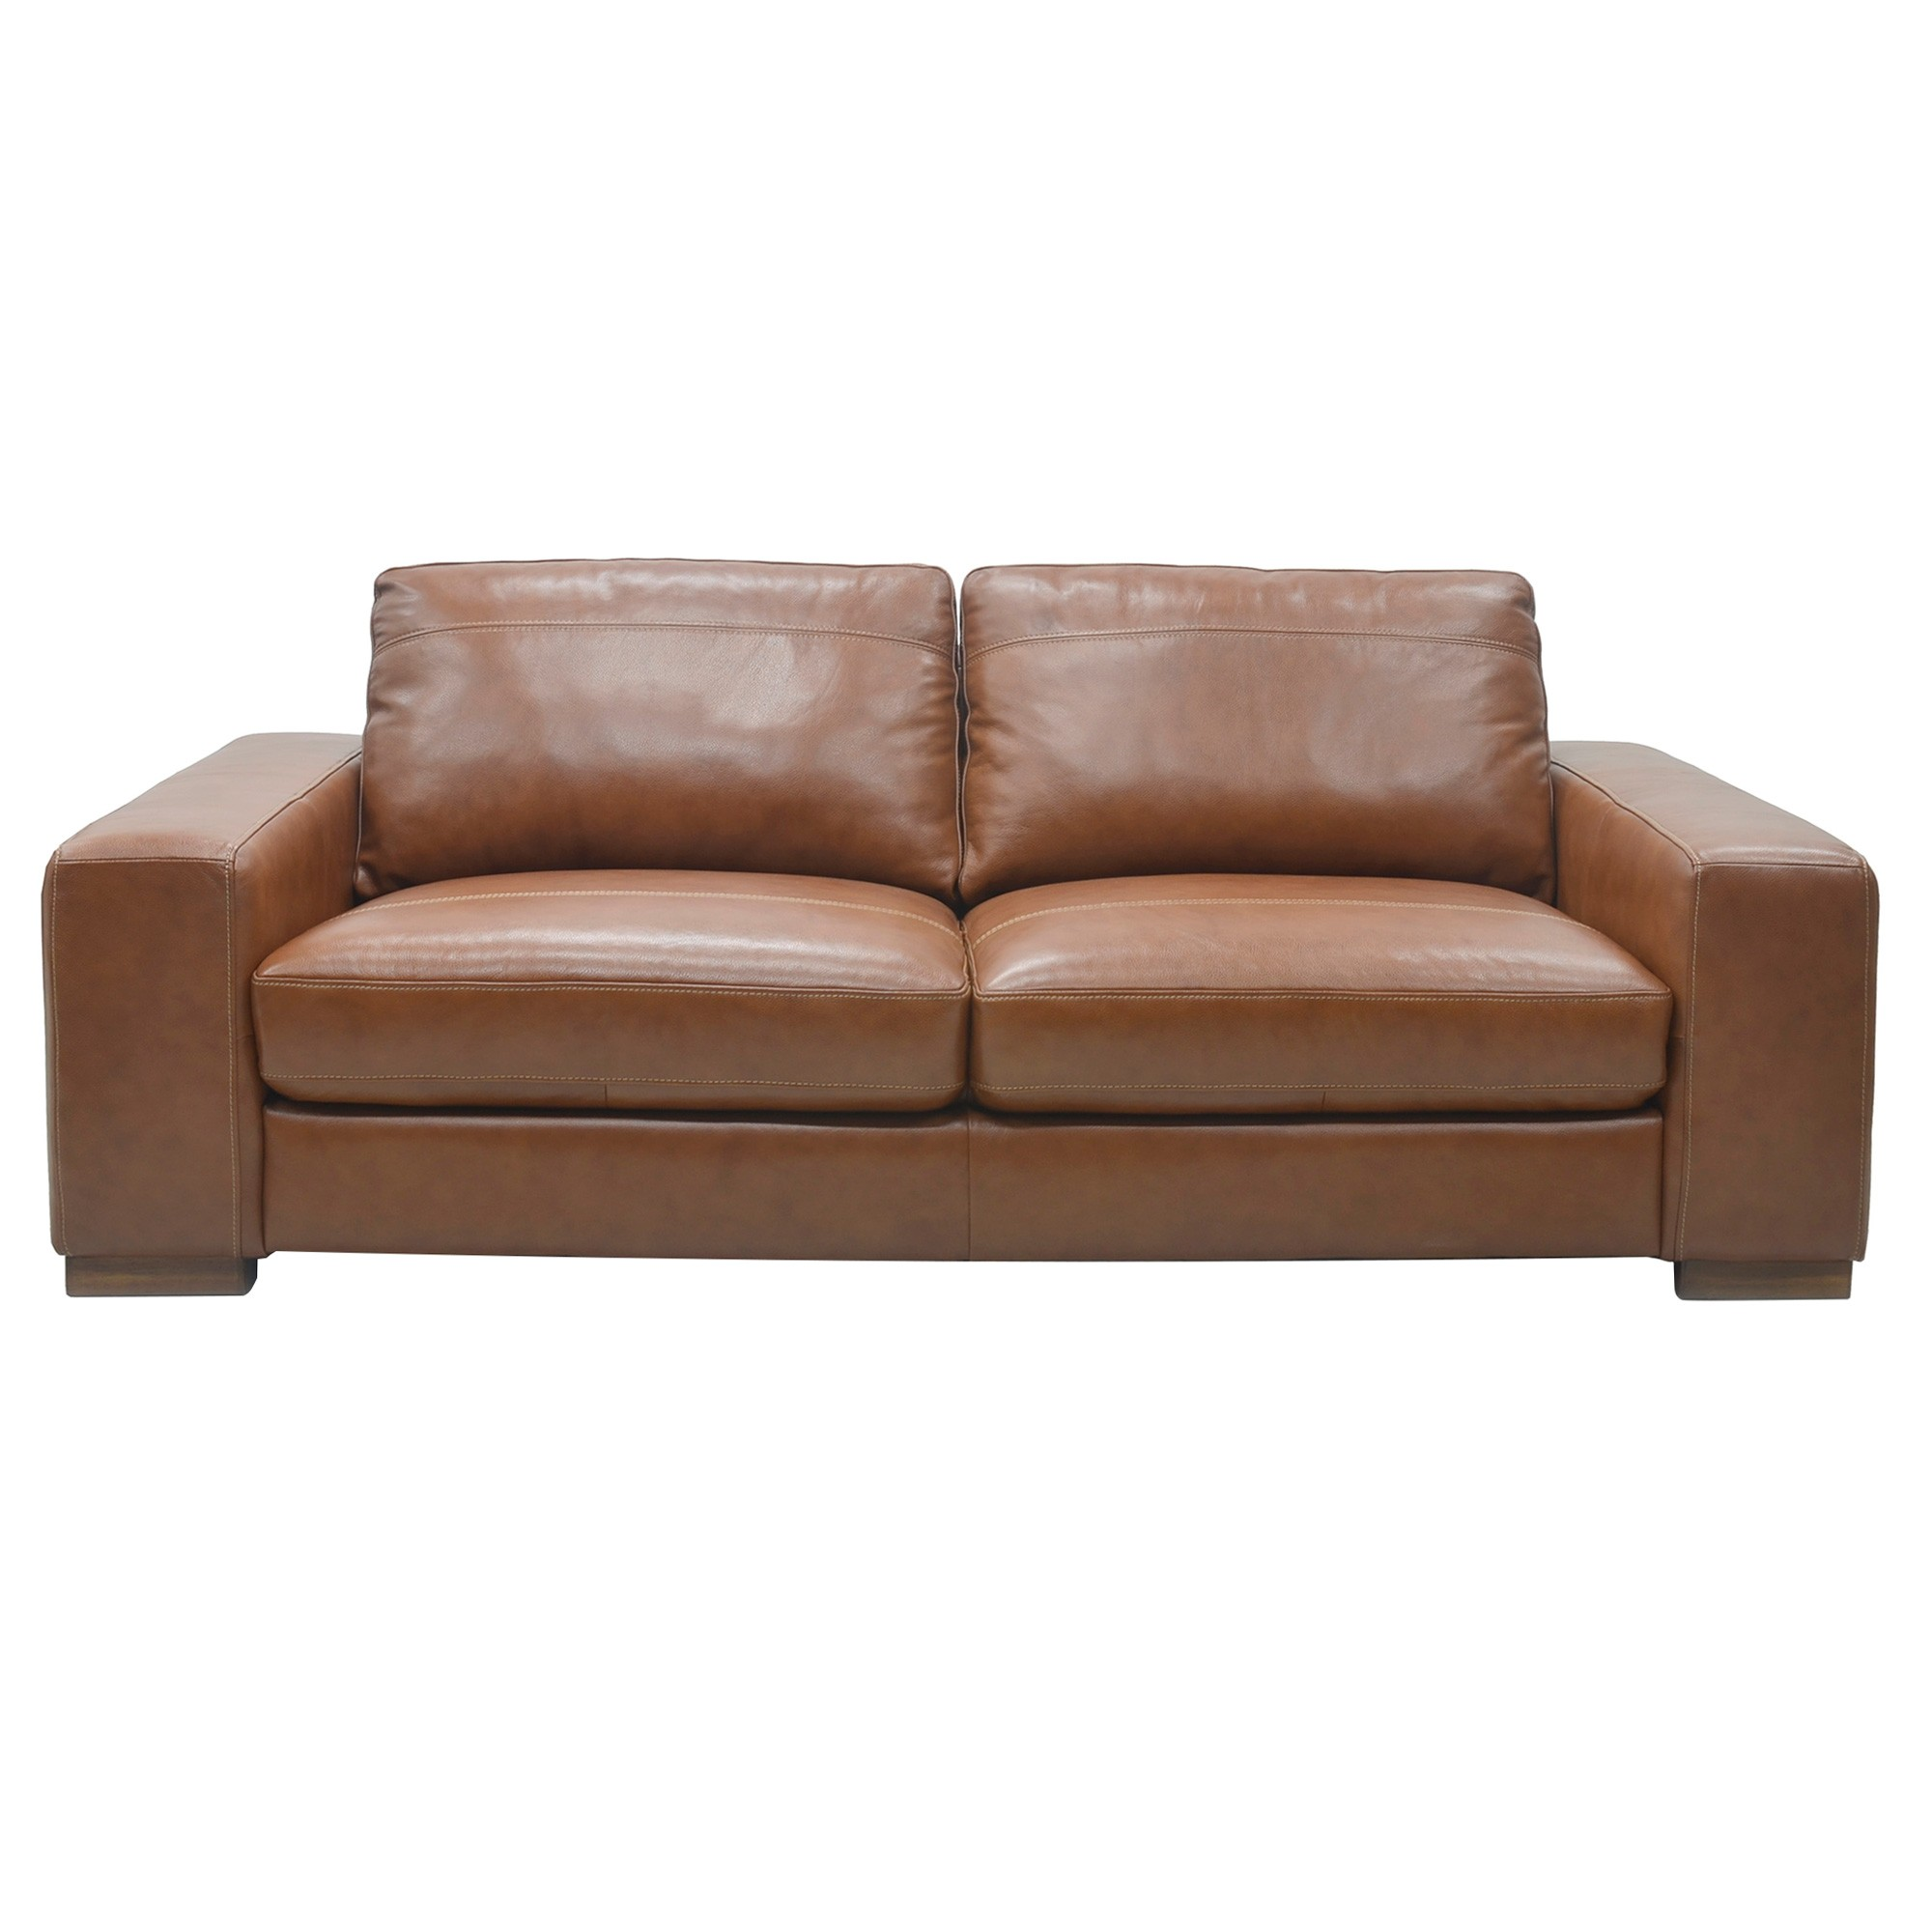 Belmont Leather Sofa, 3 Seater, Butterscotch